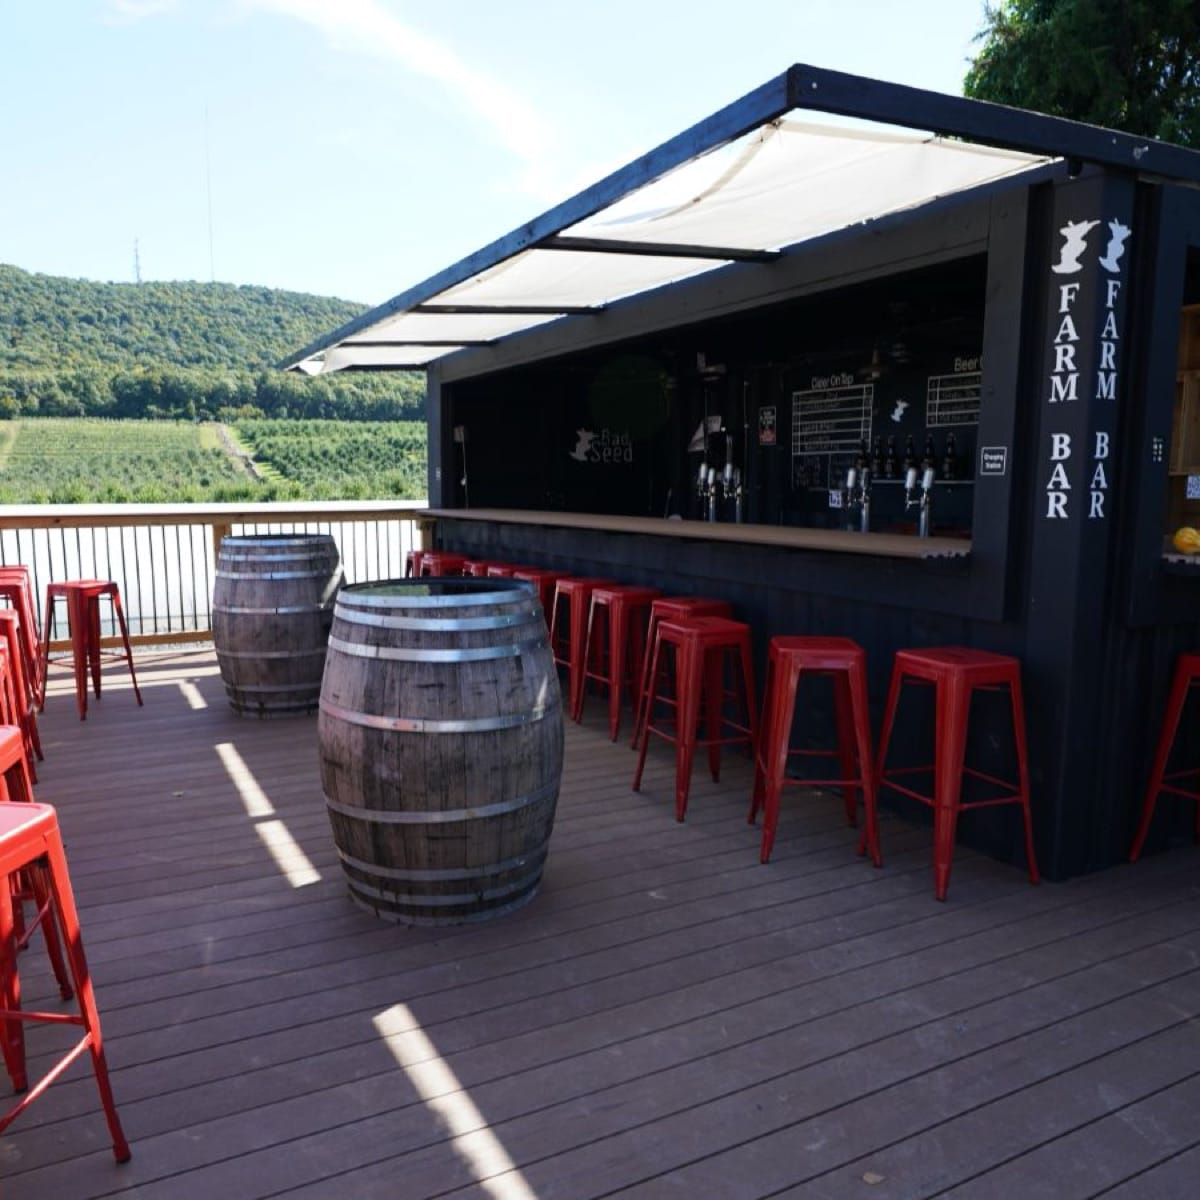 Two wooden barrels and a collection of red bar stools on the outdoor patio at the Bad Seed Farm Bar.